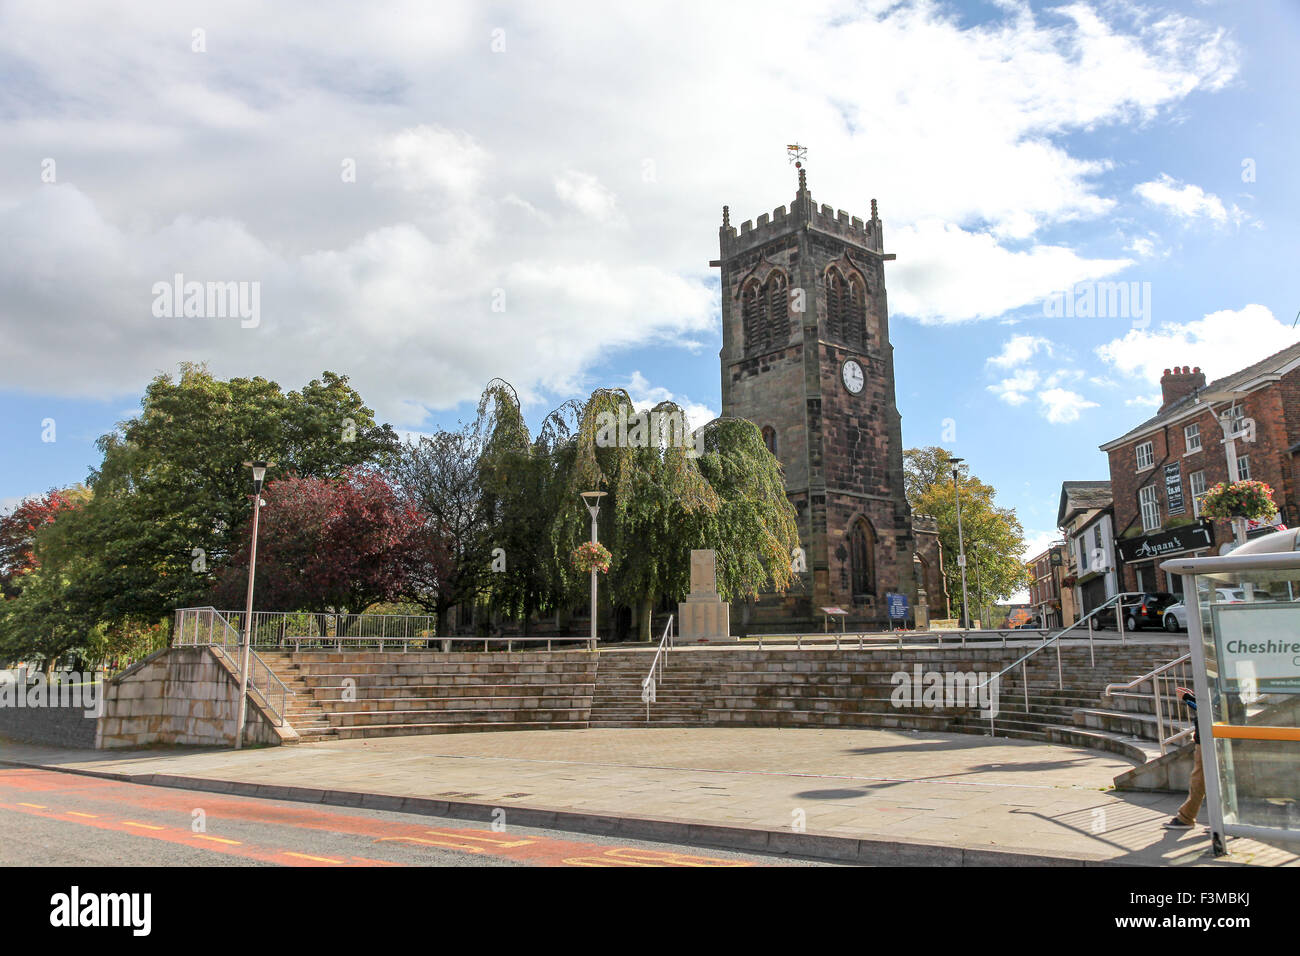 St Michael and All Angels church Middlewich Cheshire England UK - Stock Image